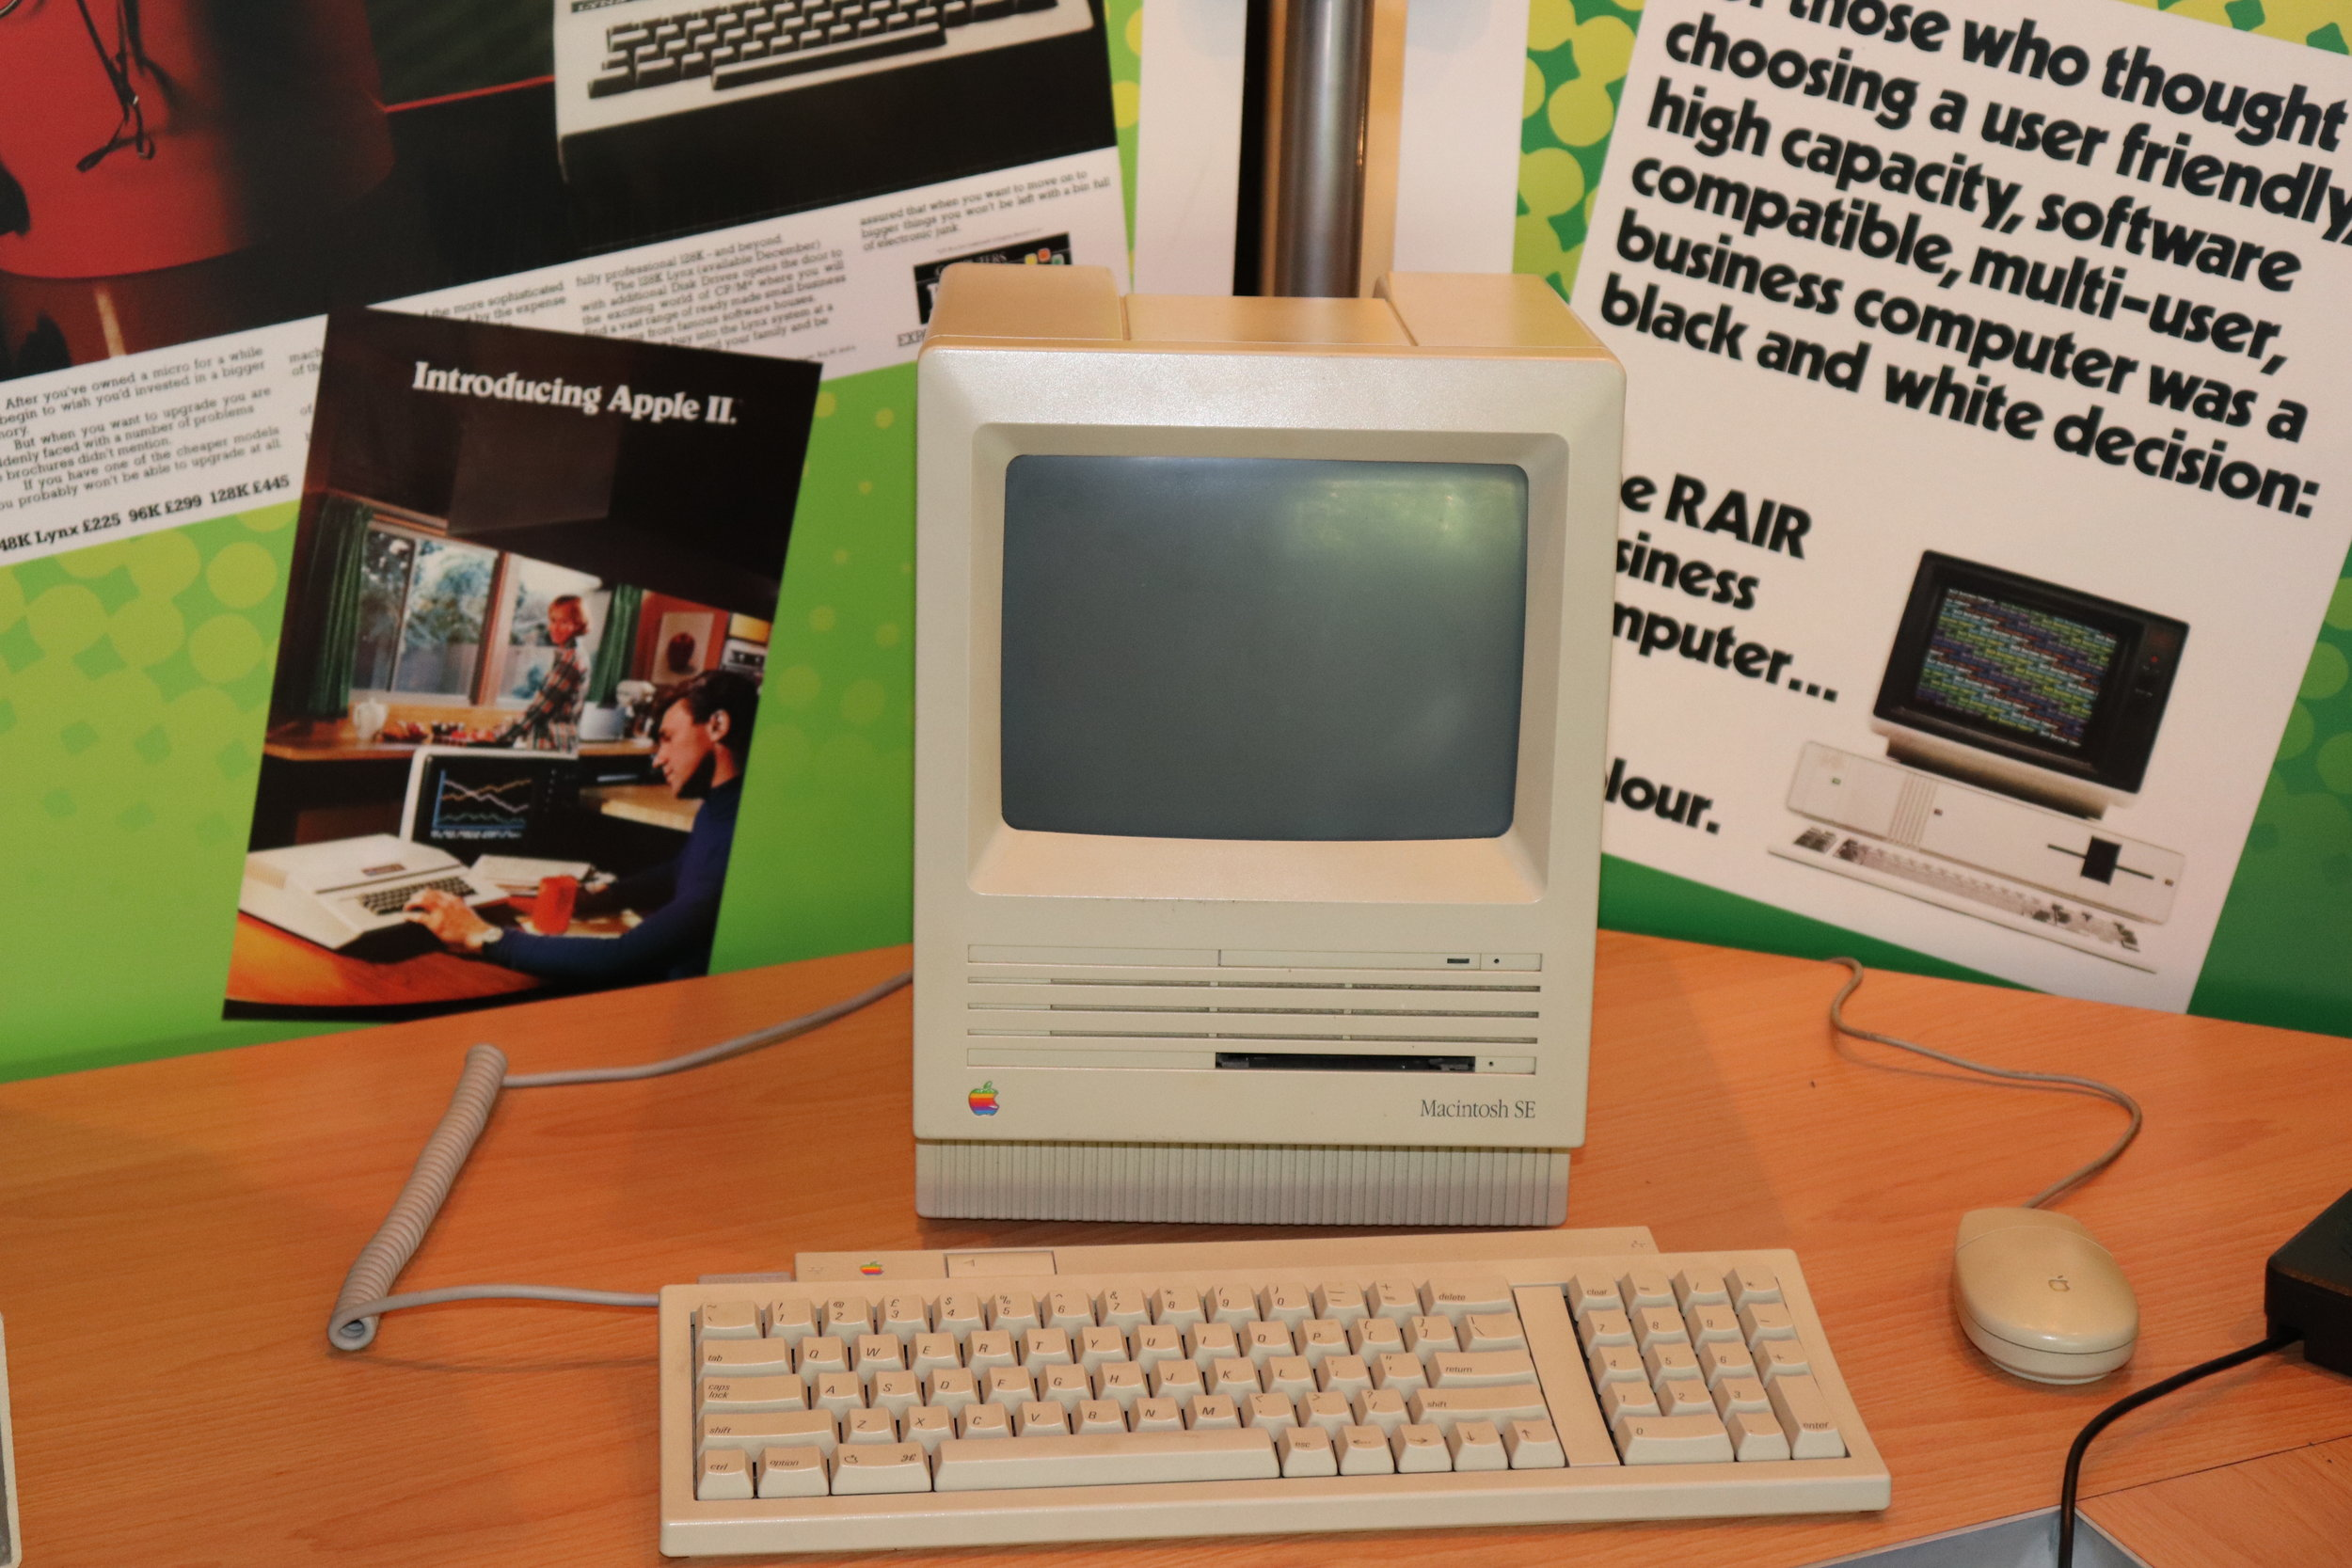 My Anti-Apple Bias was tested when my Dad told me he wanted an Apple Macintsh SE when they were released